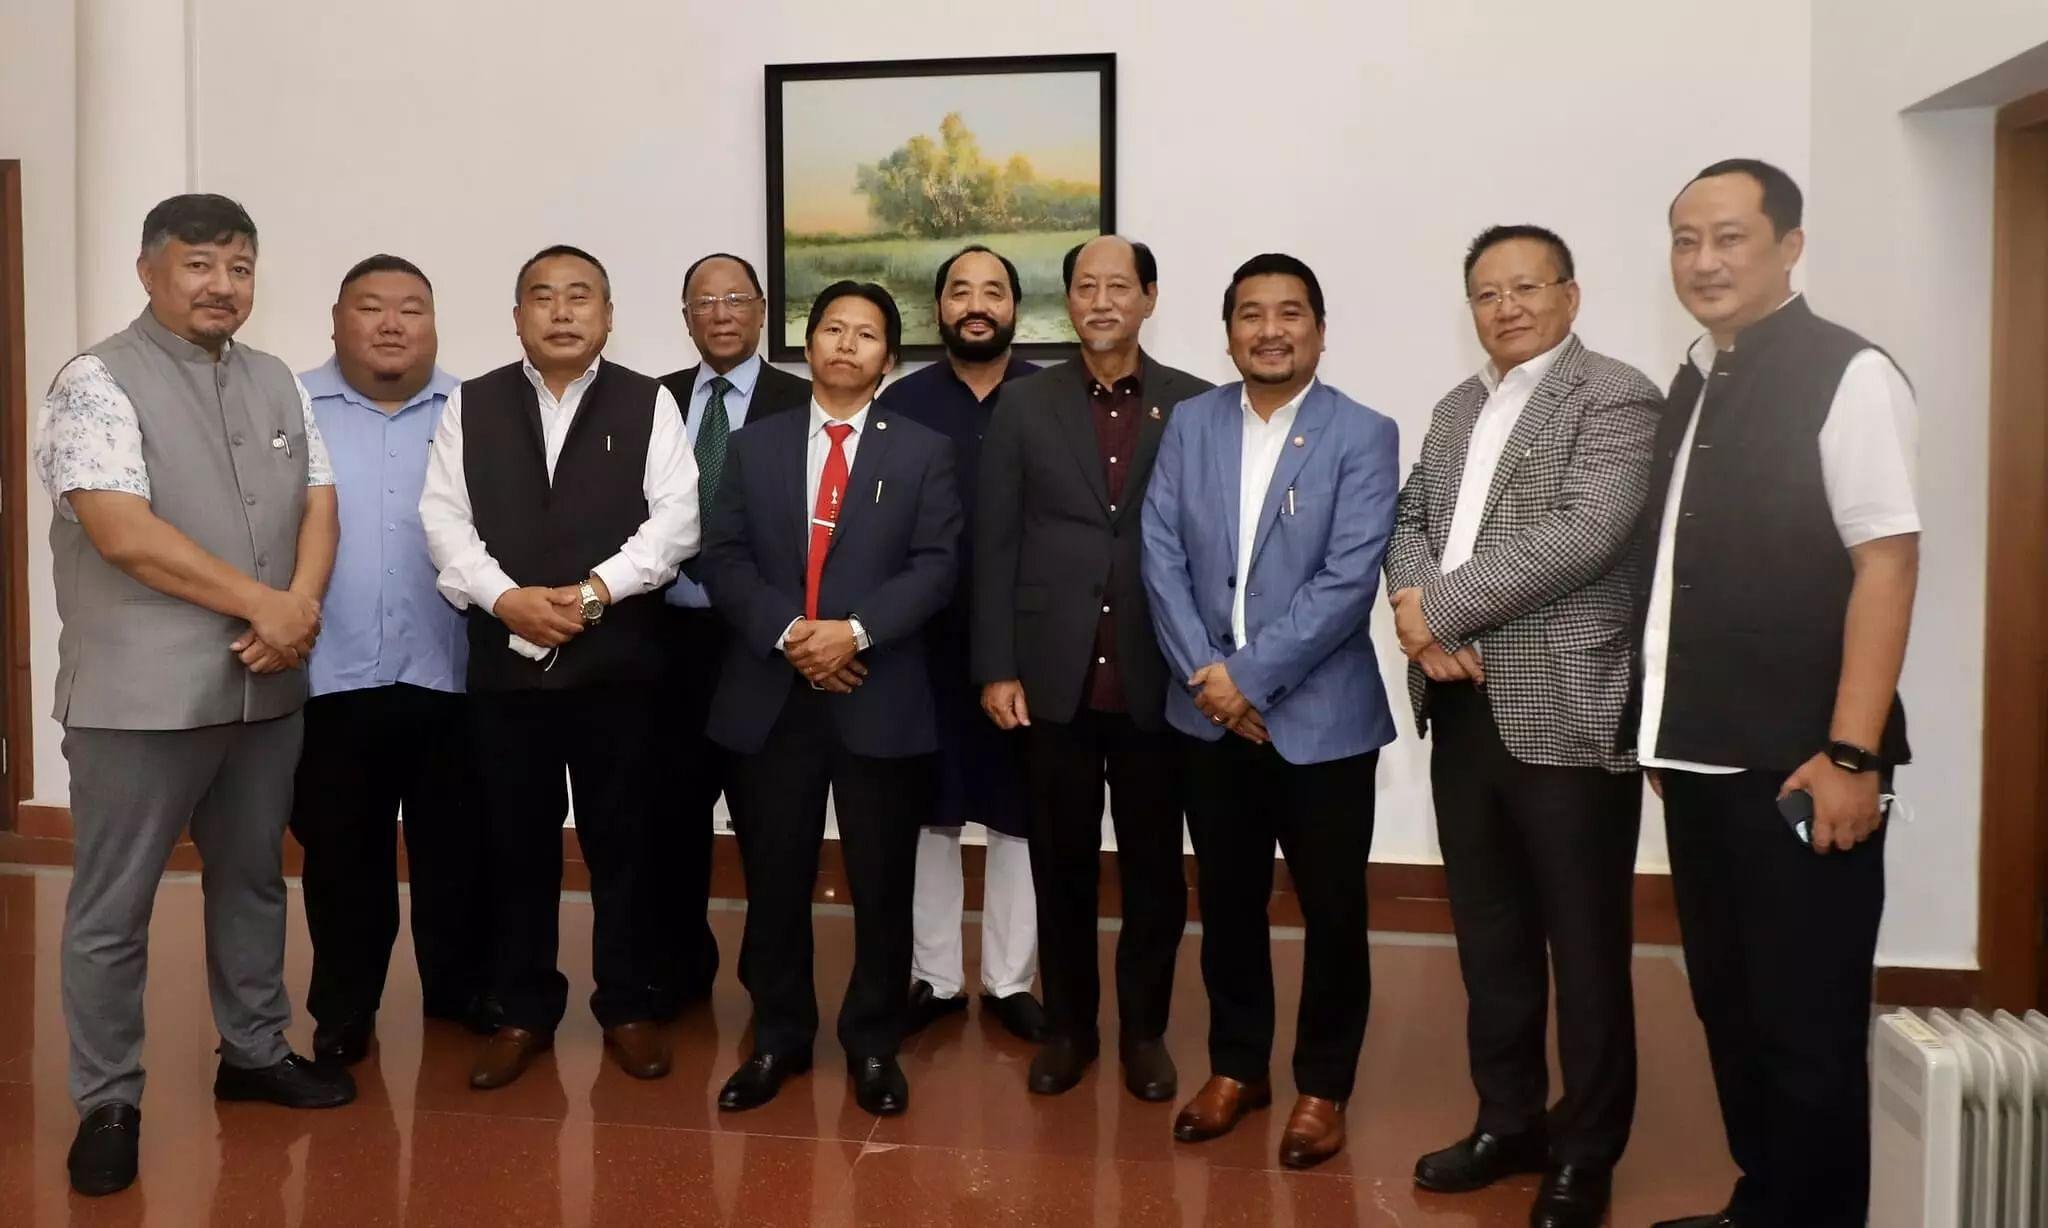 Nagaland Government Declares Itself As Oppositionless, To Be Called United Democratic Alliance